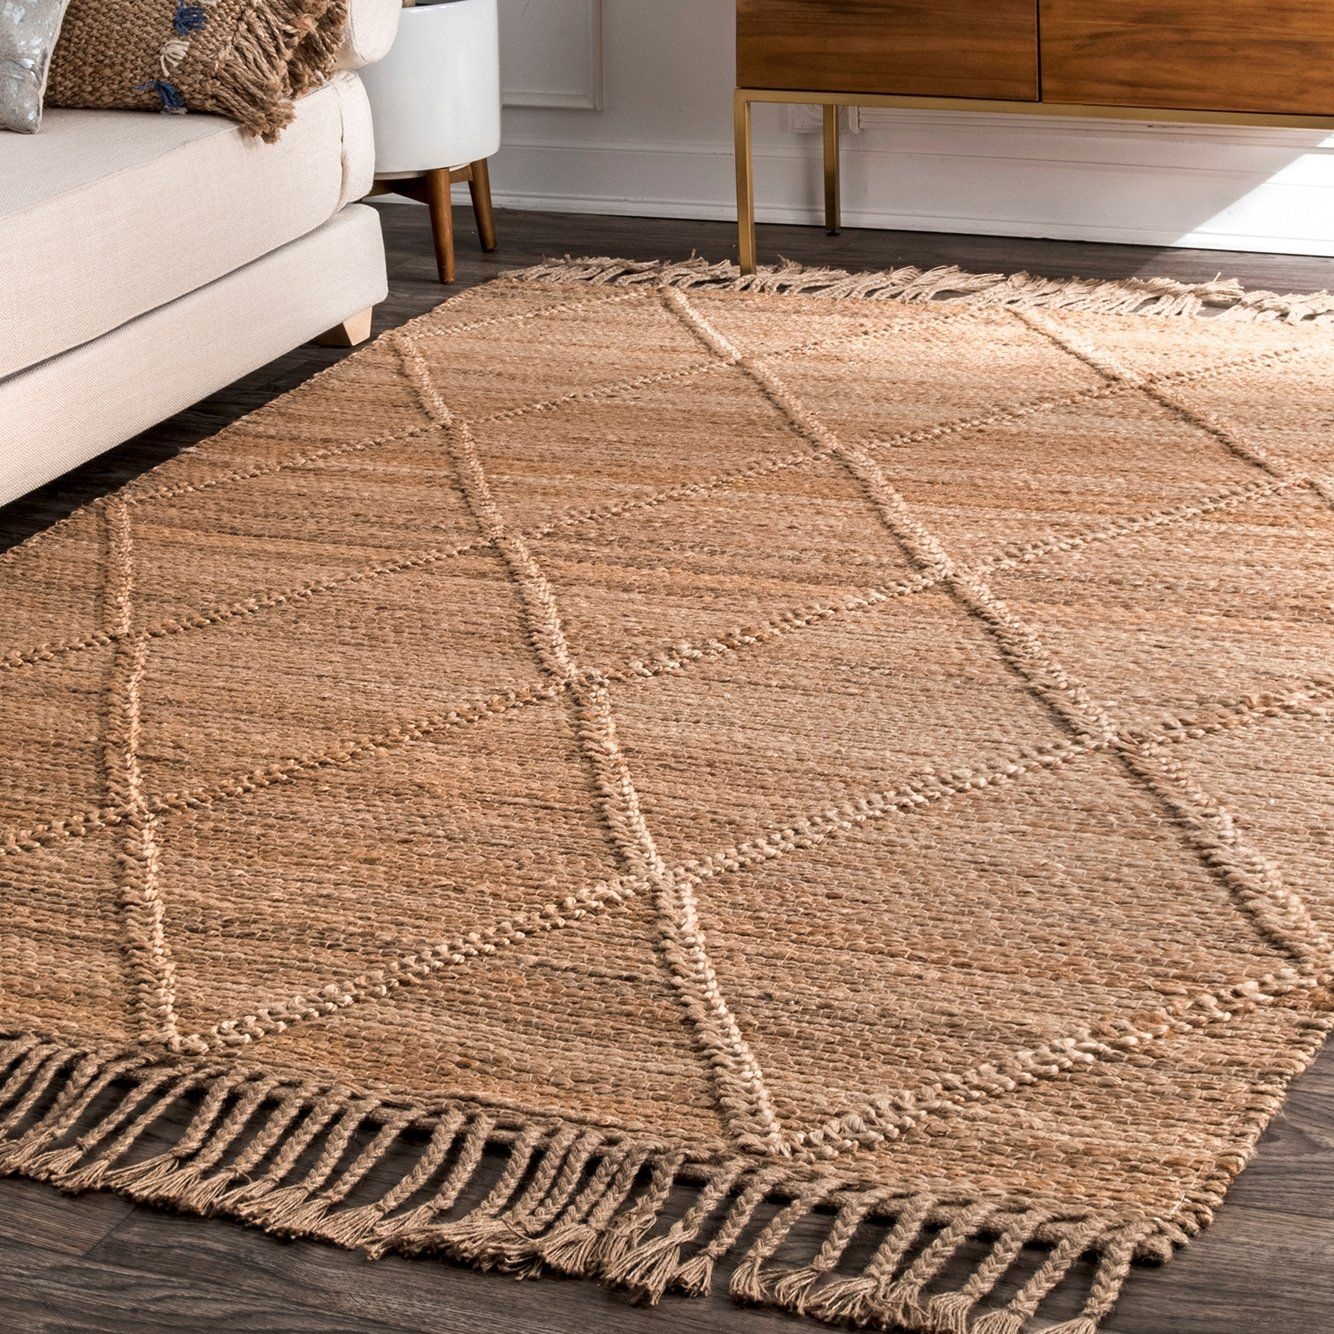 Miller Jute Hand Woven Rug In 2021 Natural Area Rugs Area Rugs Rugs